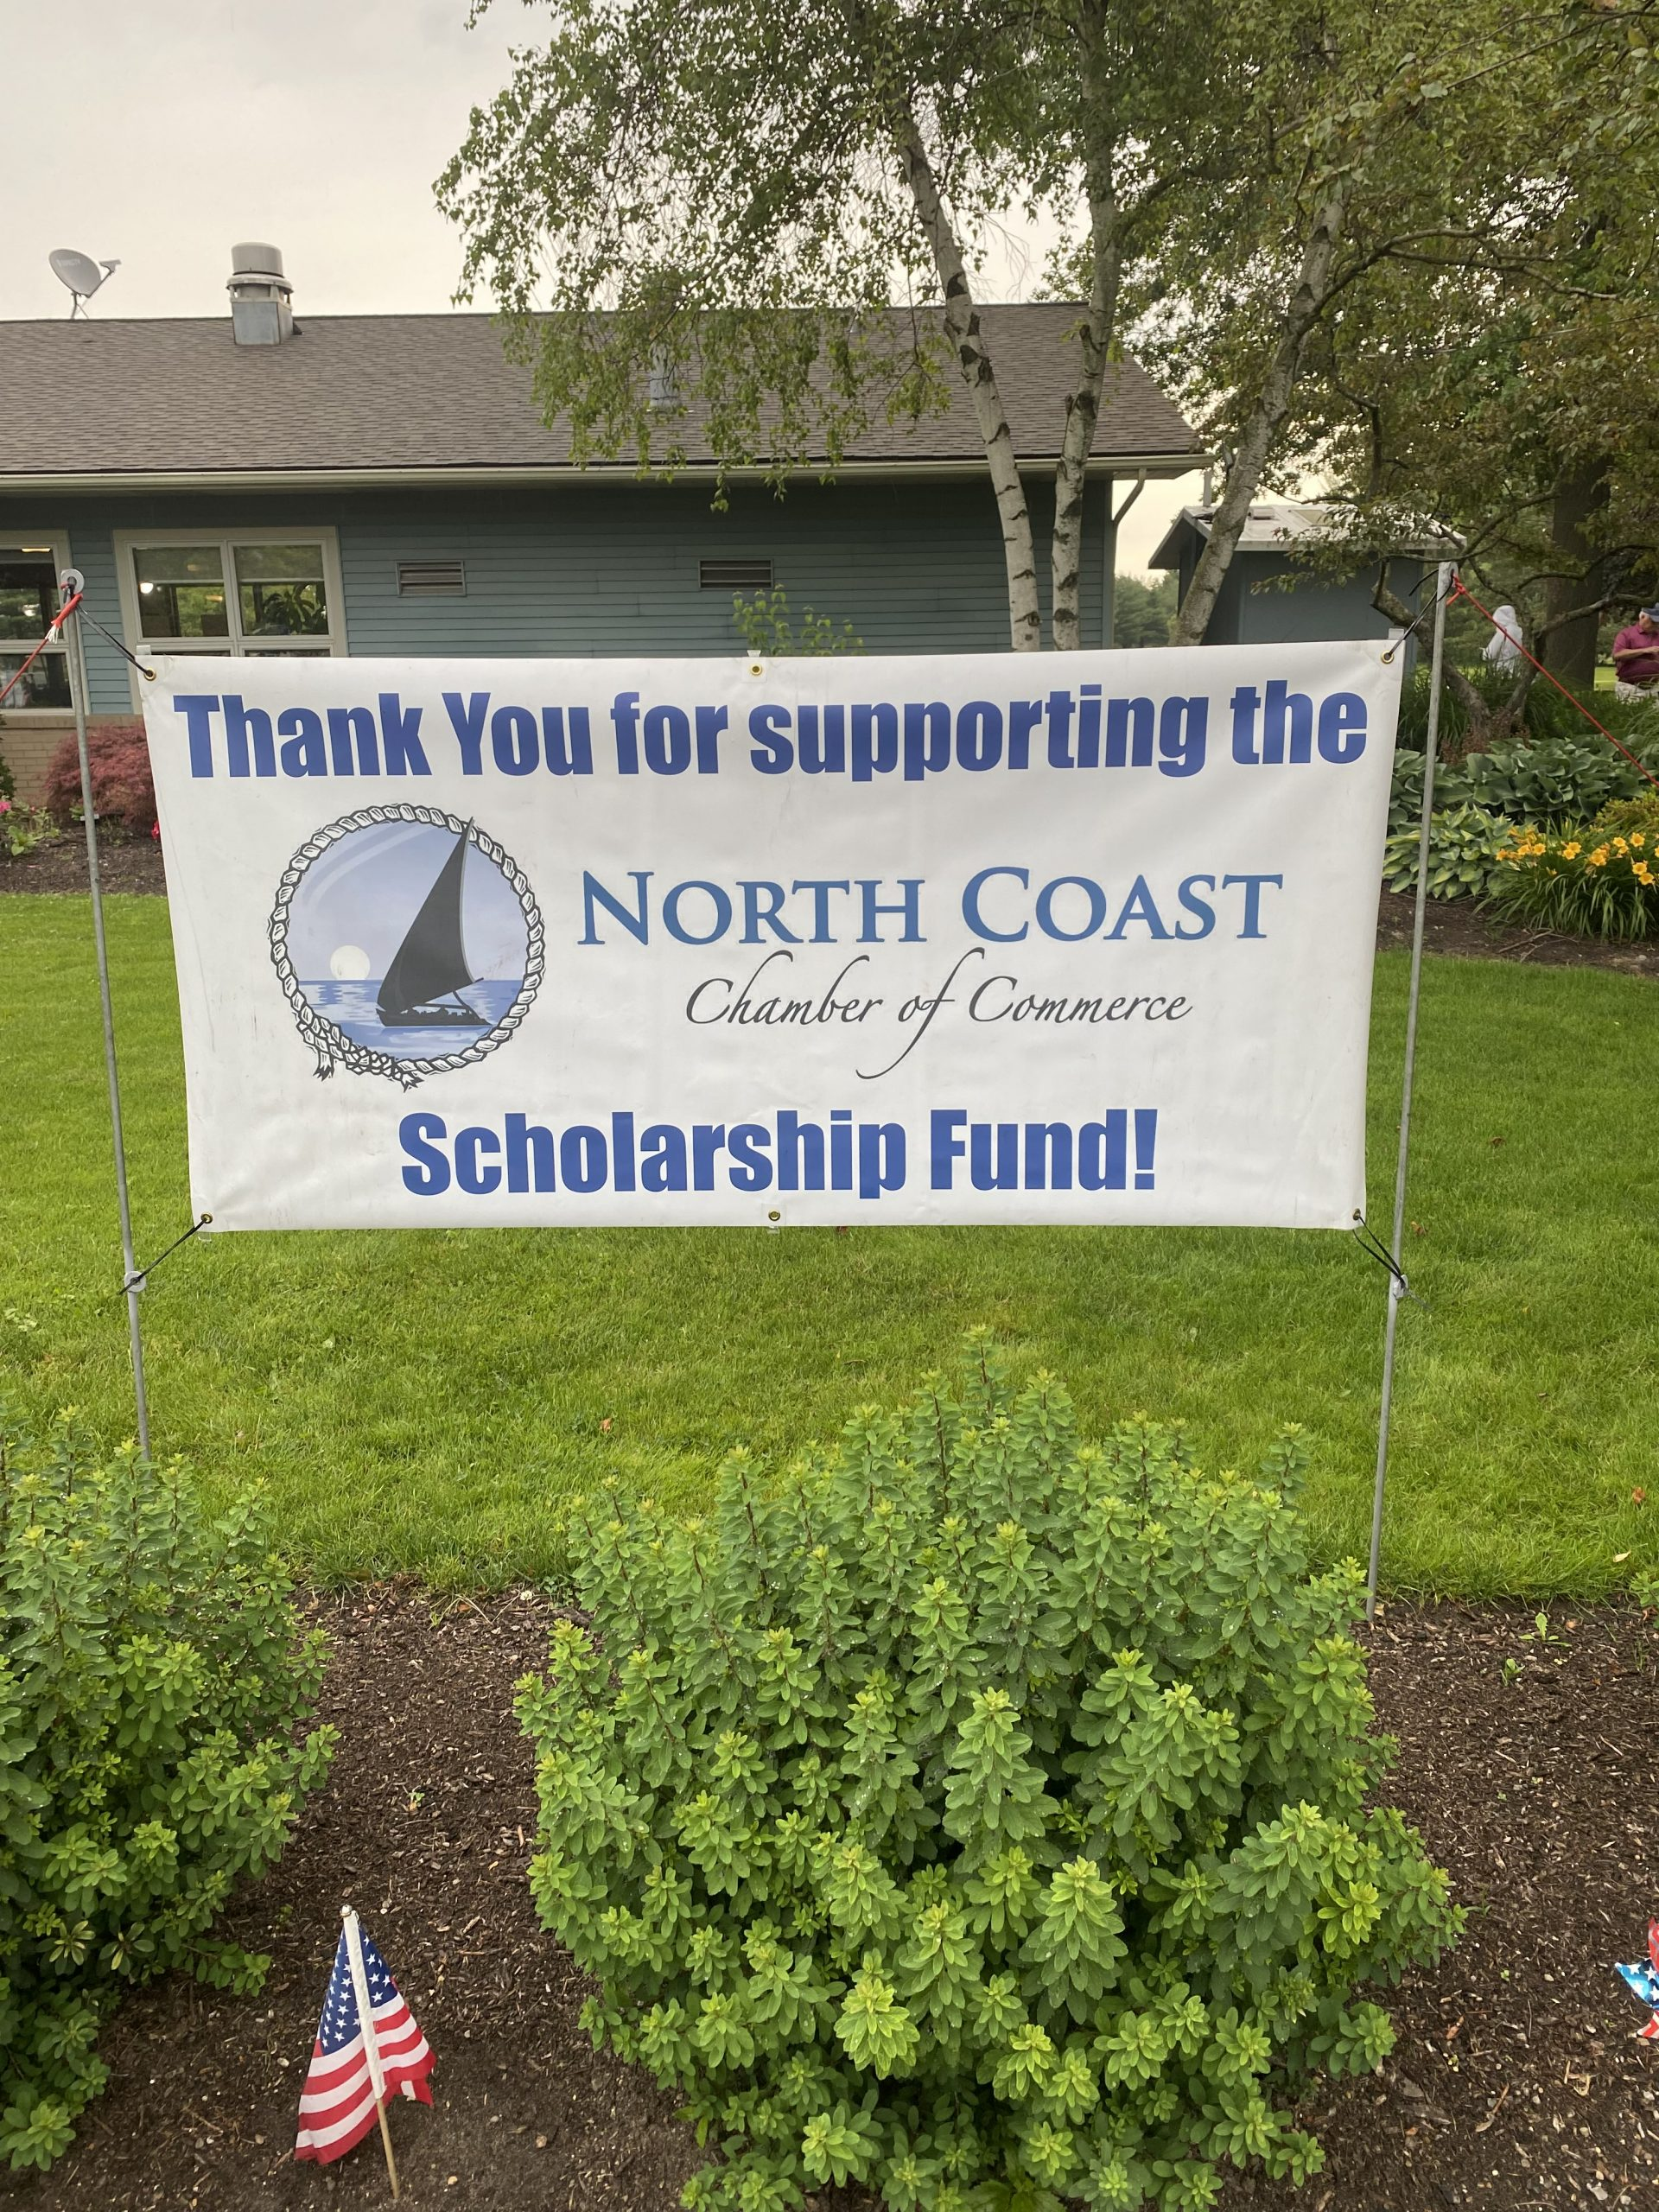 The North Coast Chamber of Commerce Golf Outing started out quite wet and turned out to be a beautiful day! Thank you to IT Support Specialists Berea for the opportunity to be your Brand Ambassador. Looking forward to the next event!